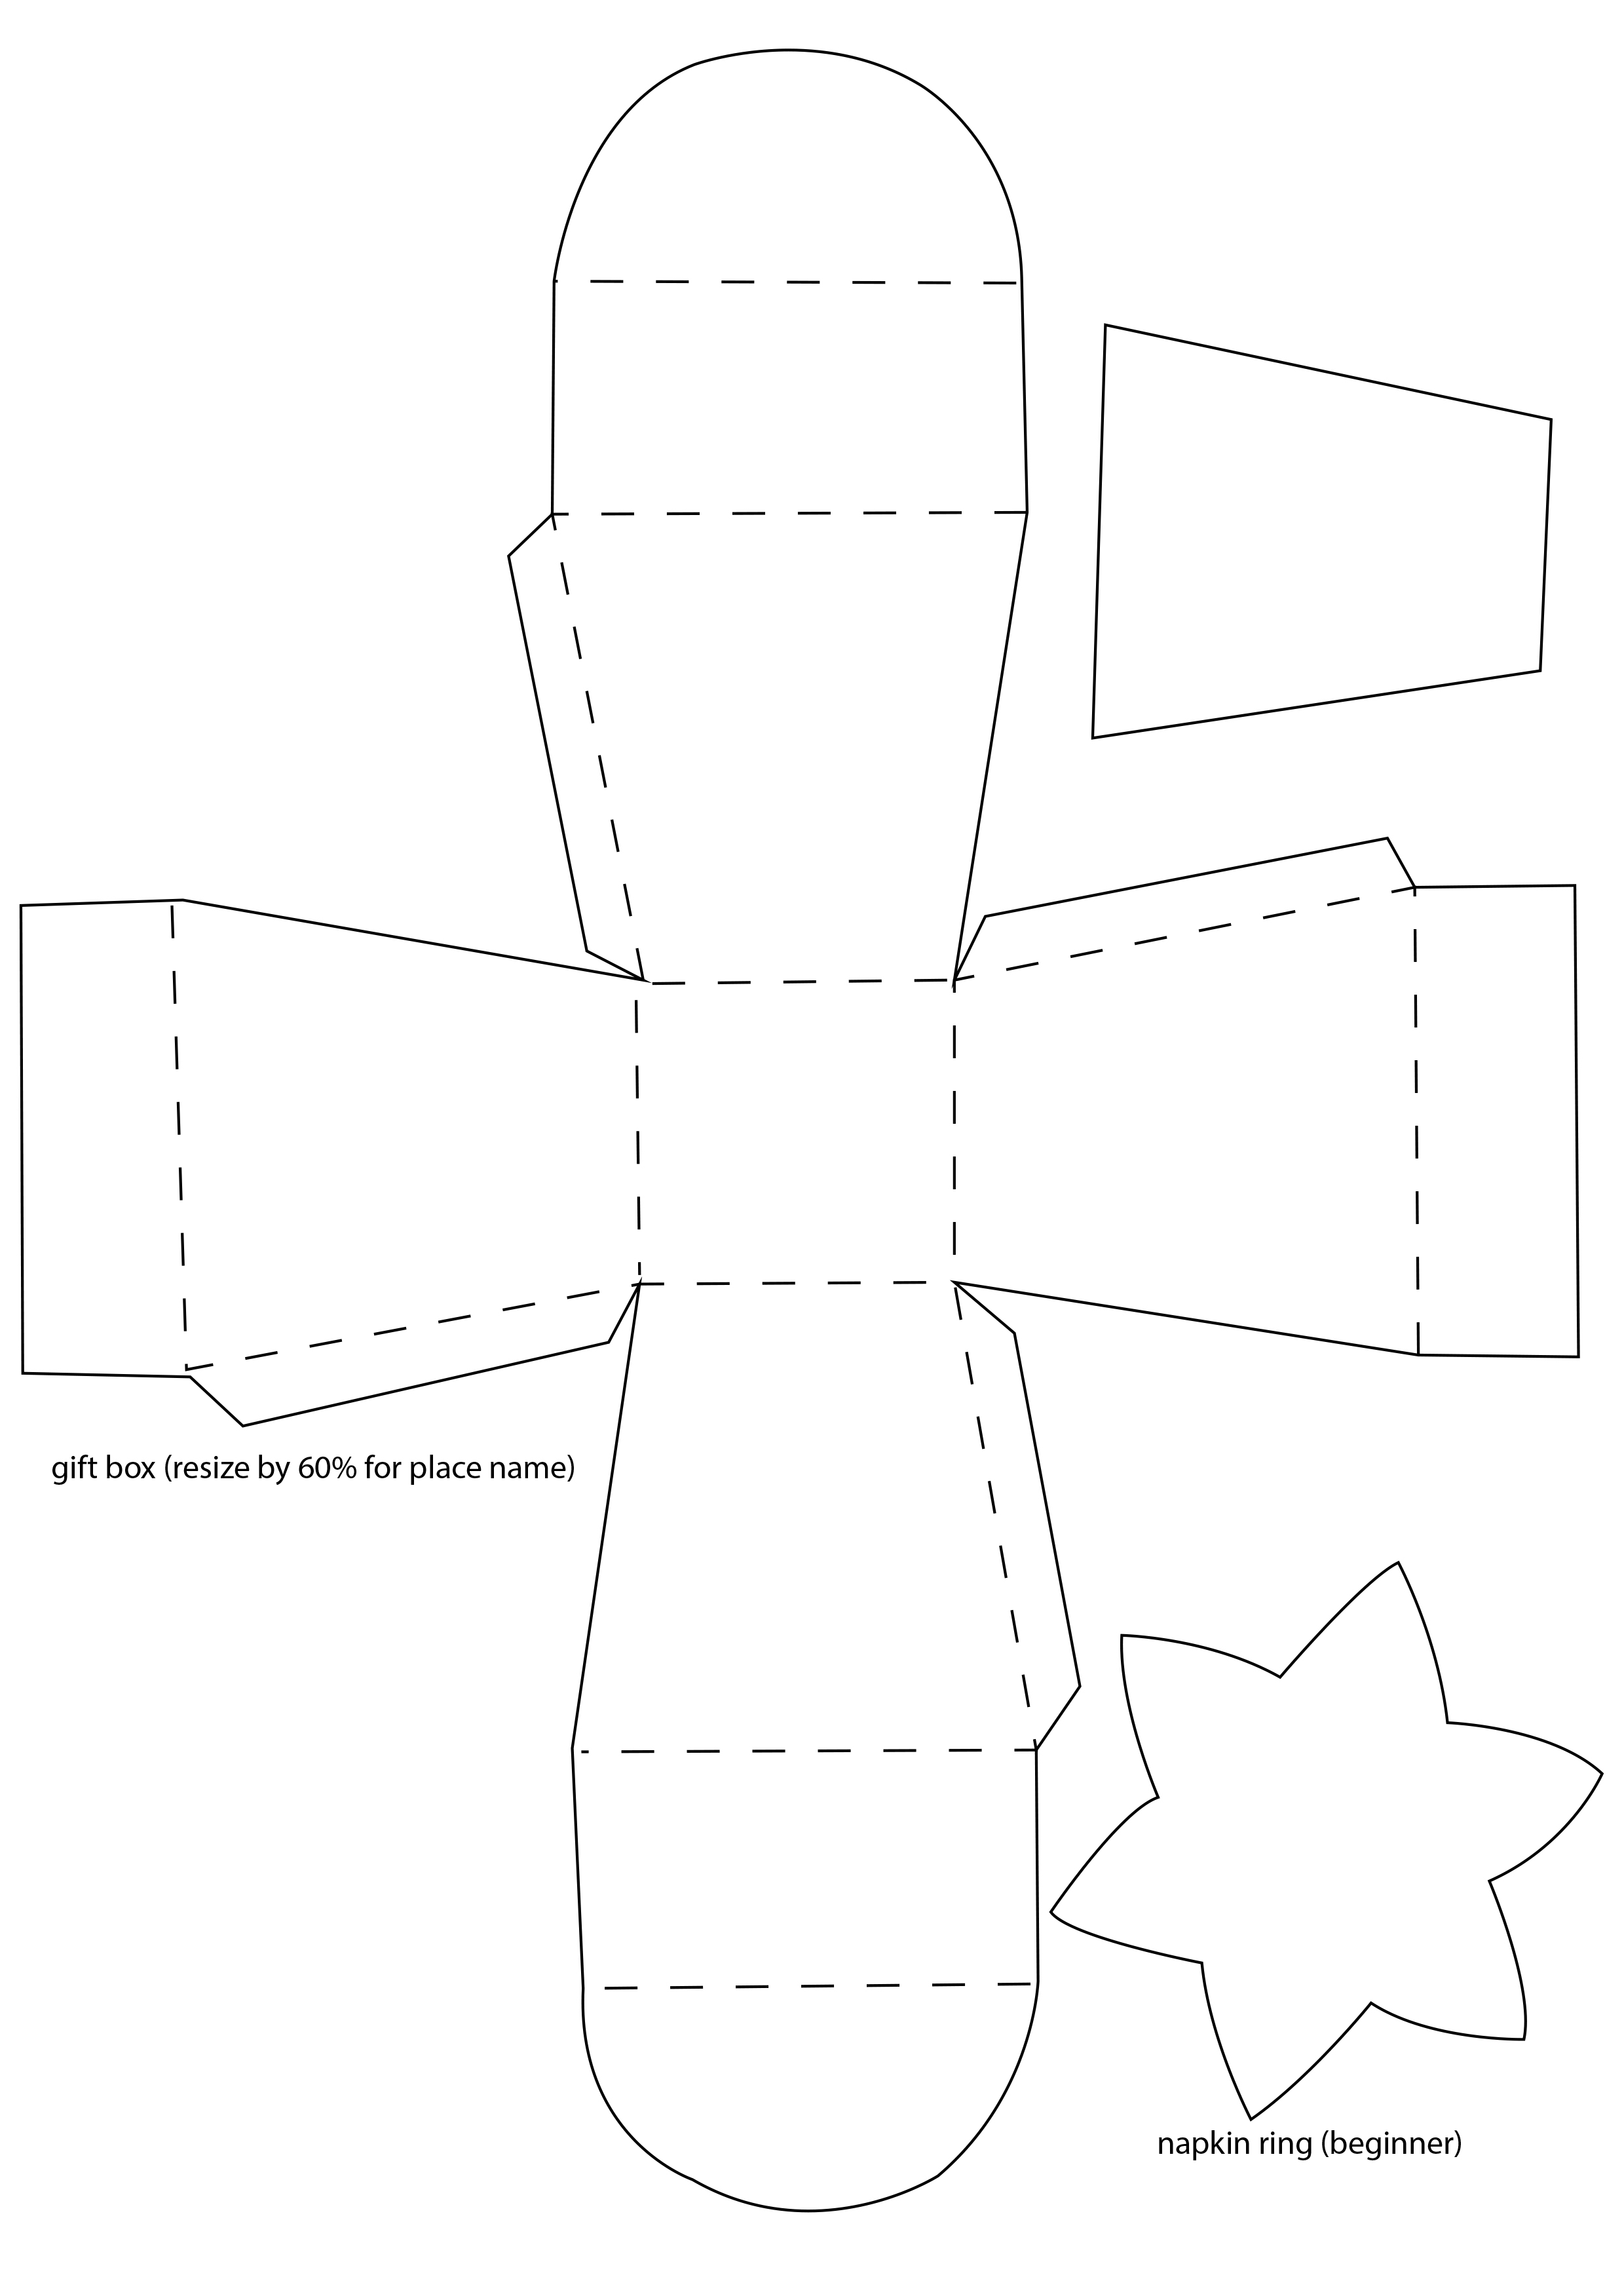 Simply cards papercraft 130 free downloads papercraftmagazines click here to download your gift box and napkin ring templates maxwellsz